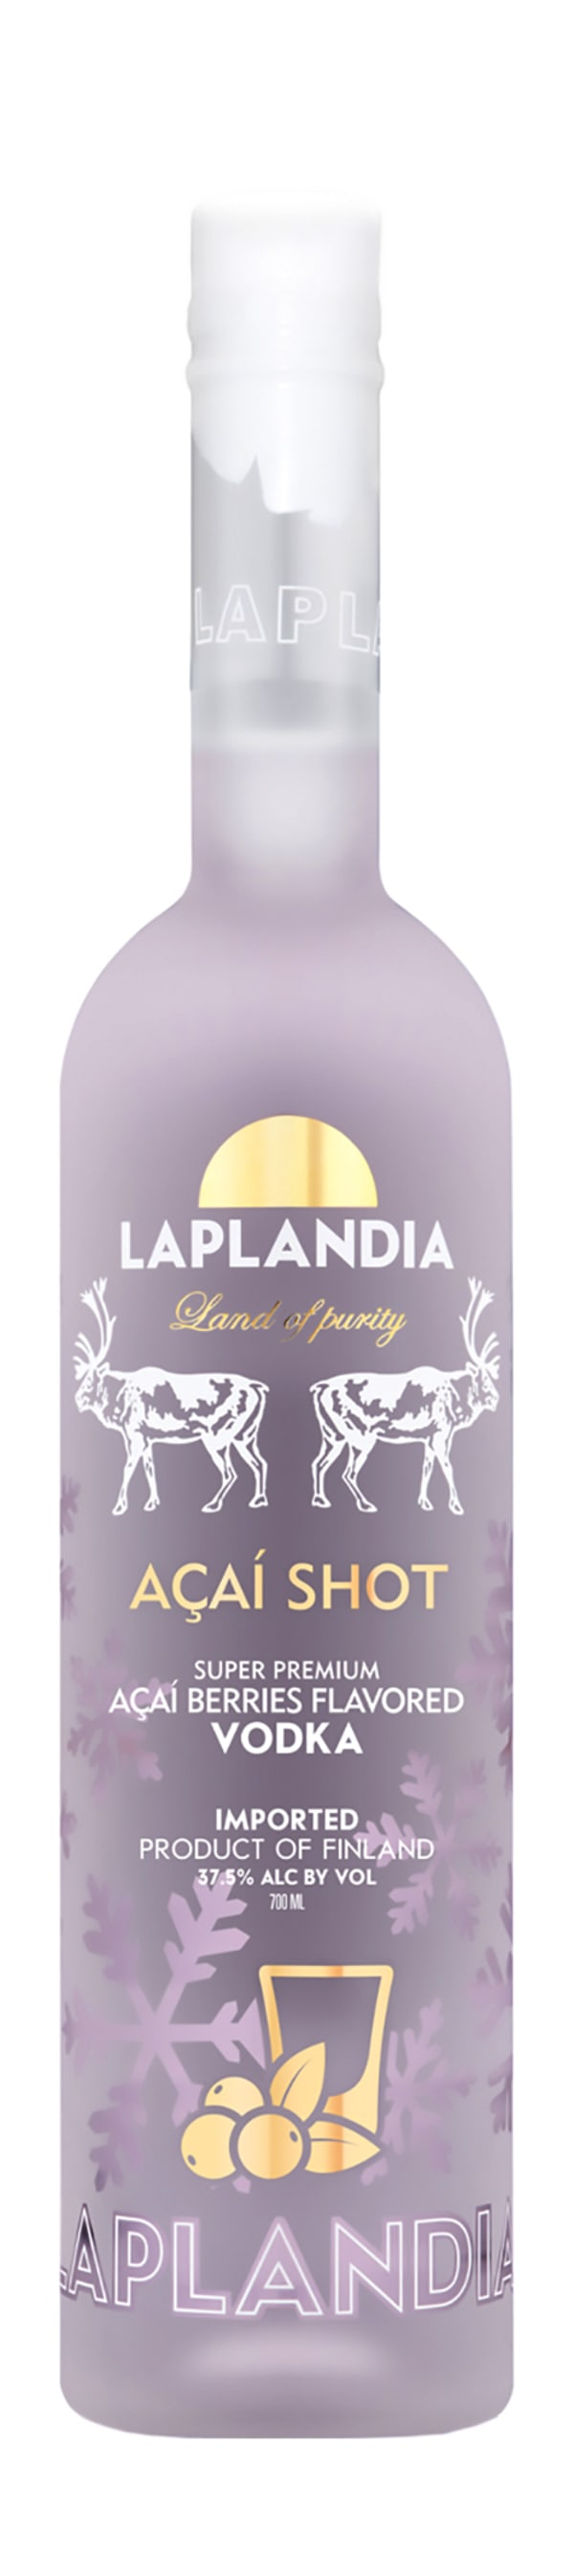 Laplandia Açaí Shot Vodka